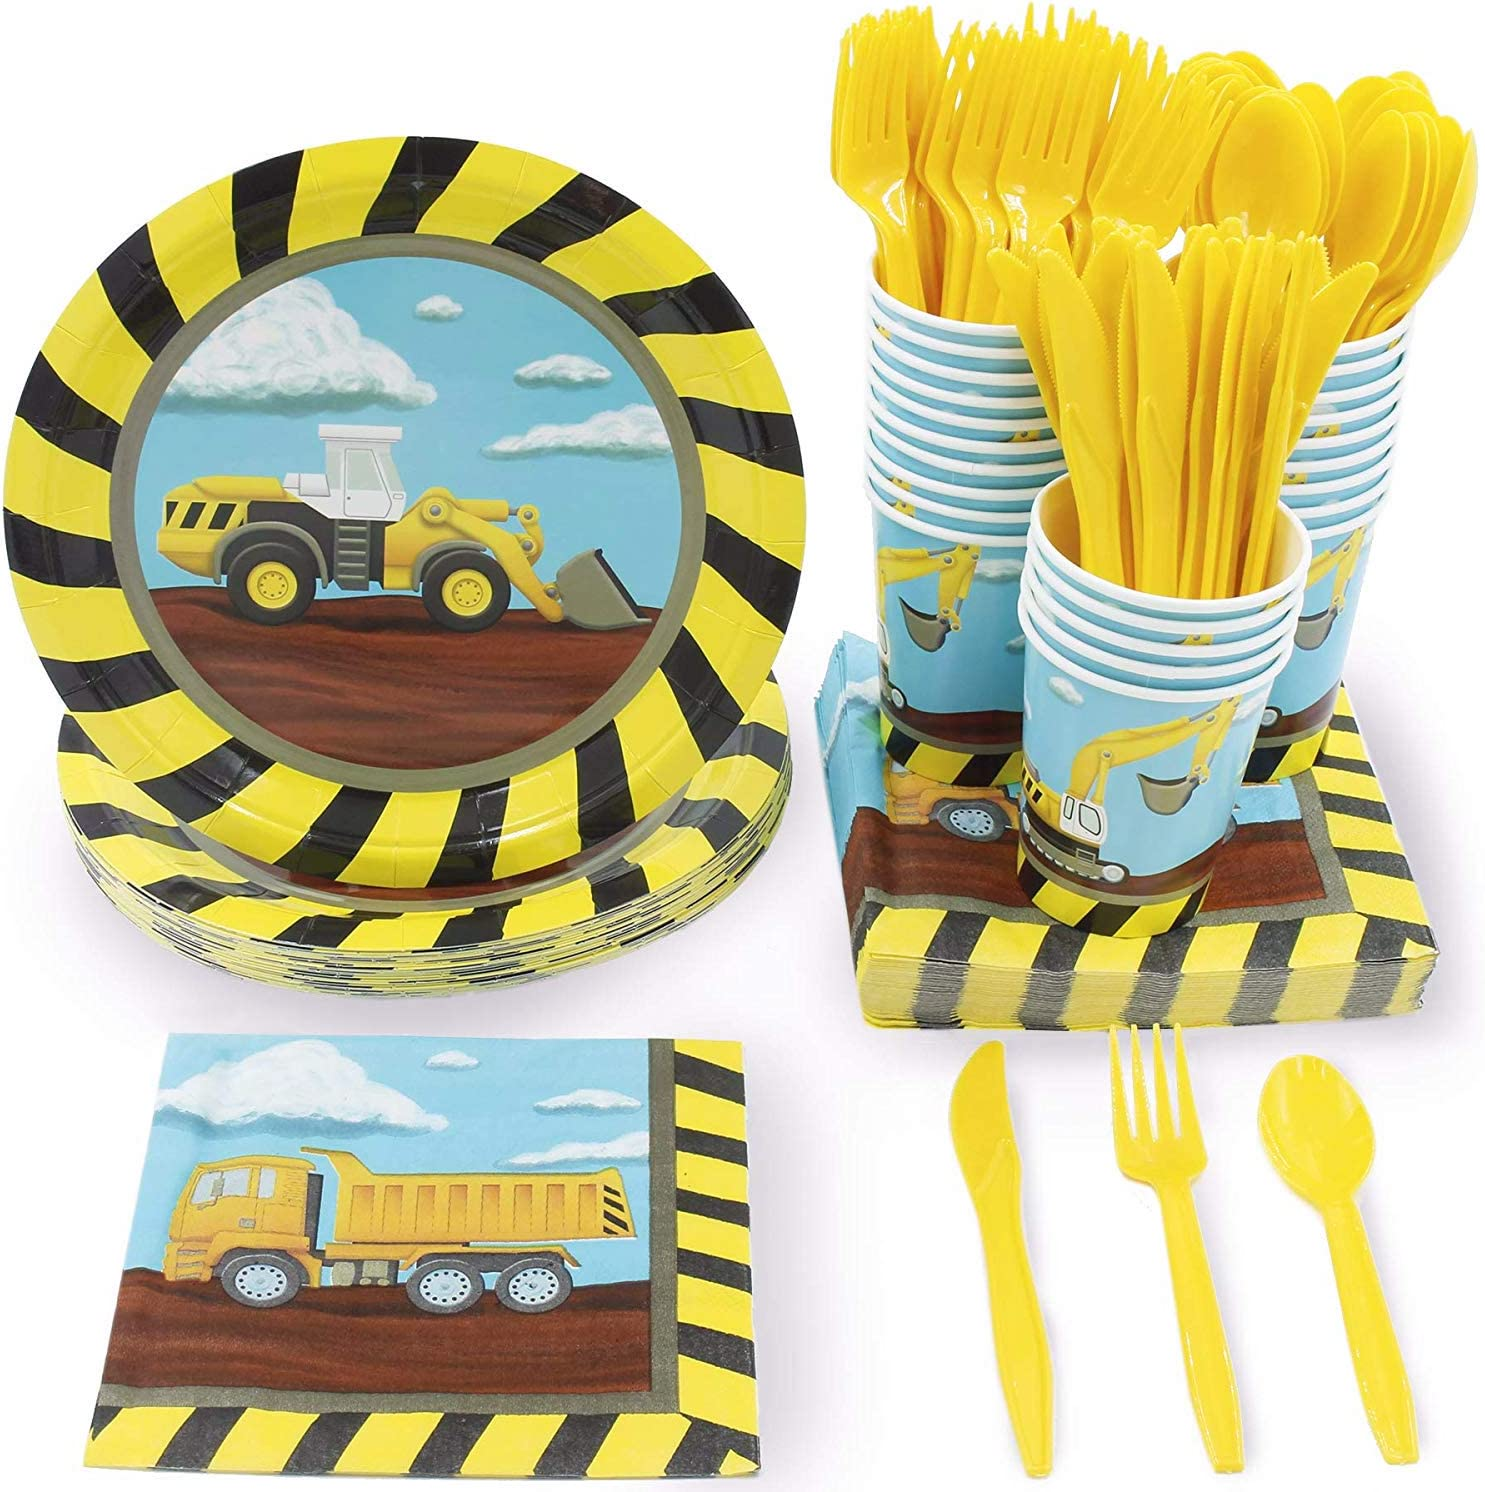 Construction Site Party Bundle, Includes Plates, Napkins, Cups and Cutlery (Serves 24, 144 Pieces)